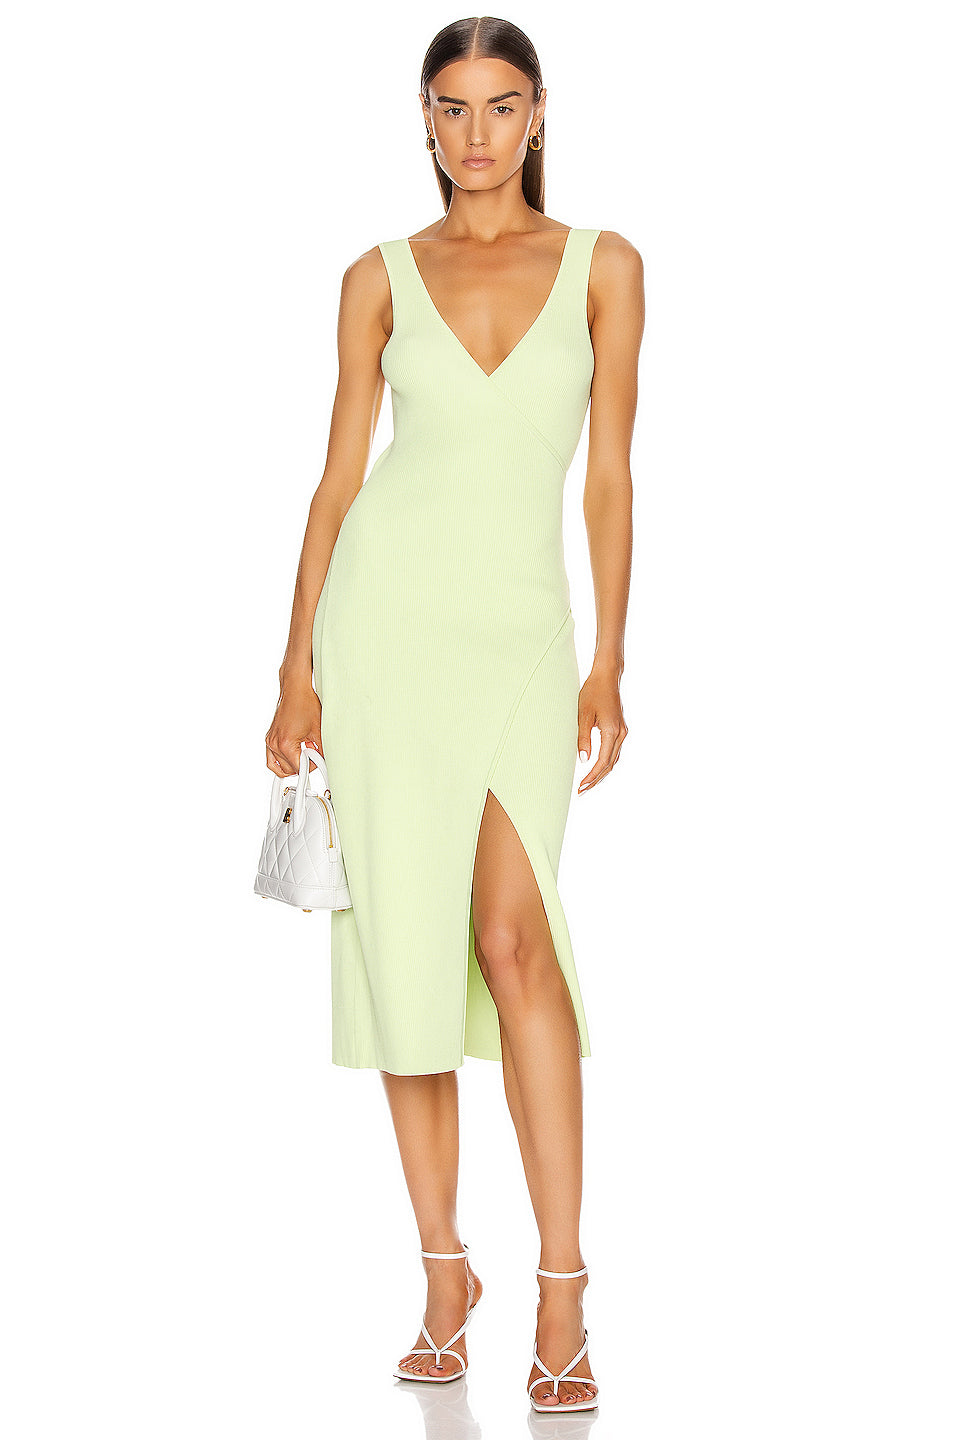 Jonathan Simkhai Milani Knit Basic Dress